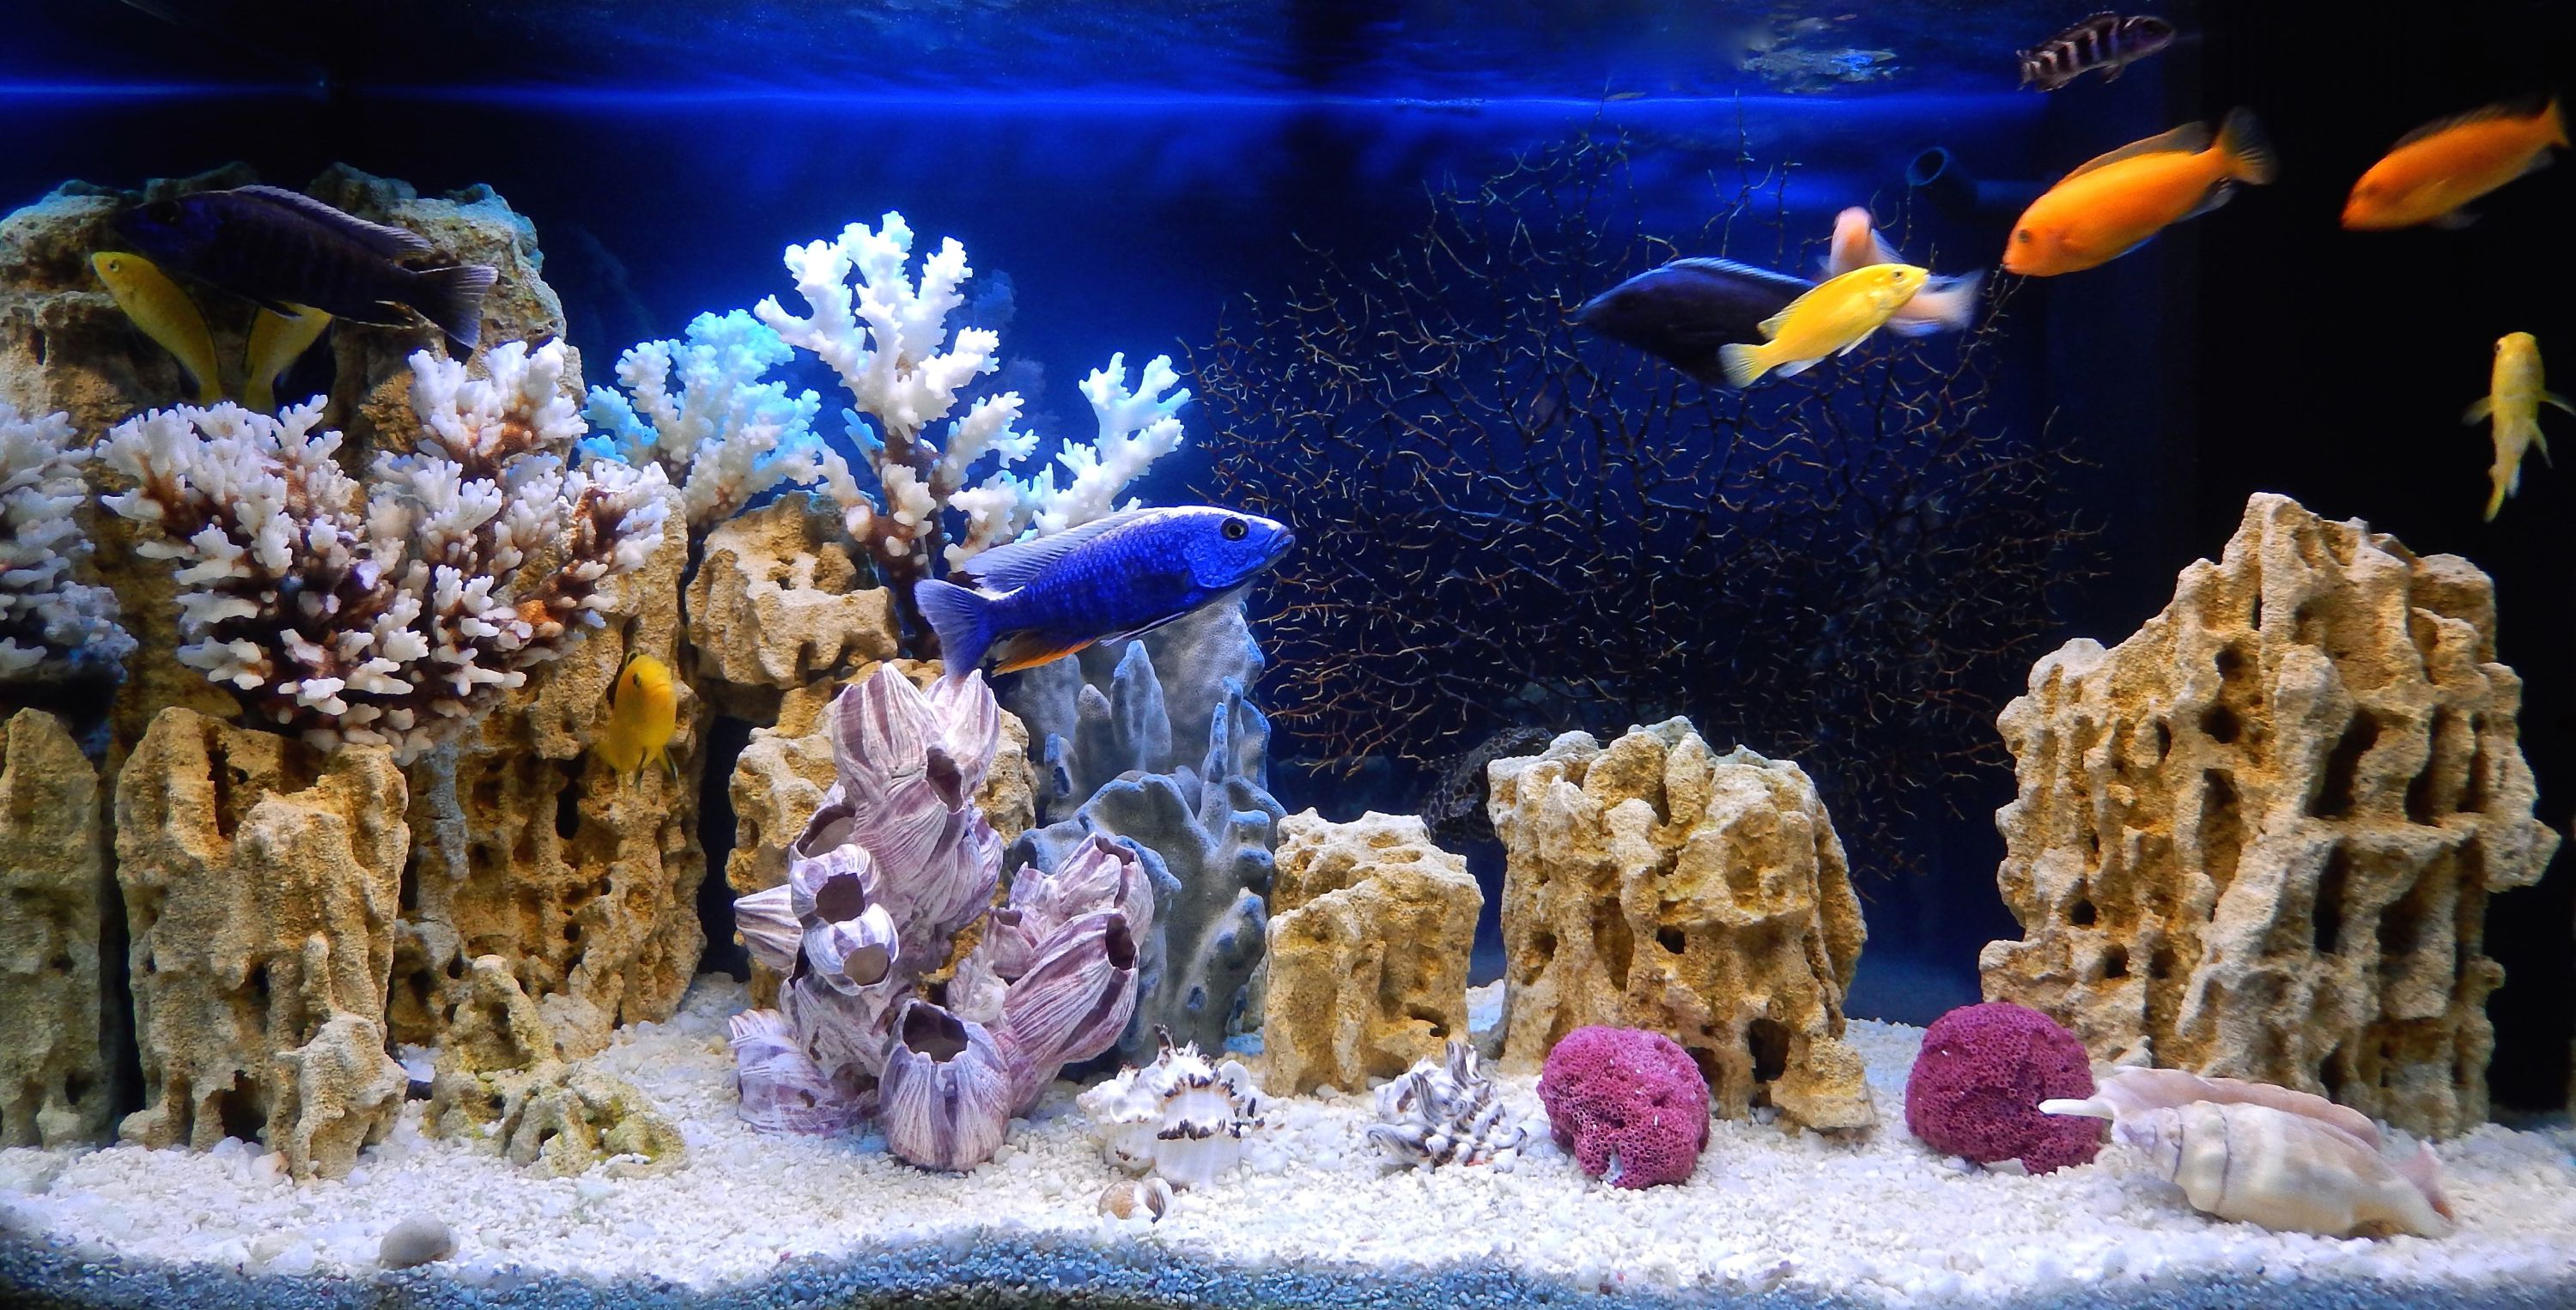 The 6 Best LED Lighting Sets for Reef Tanks in 2020